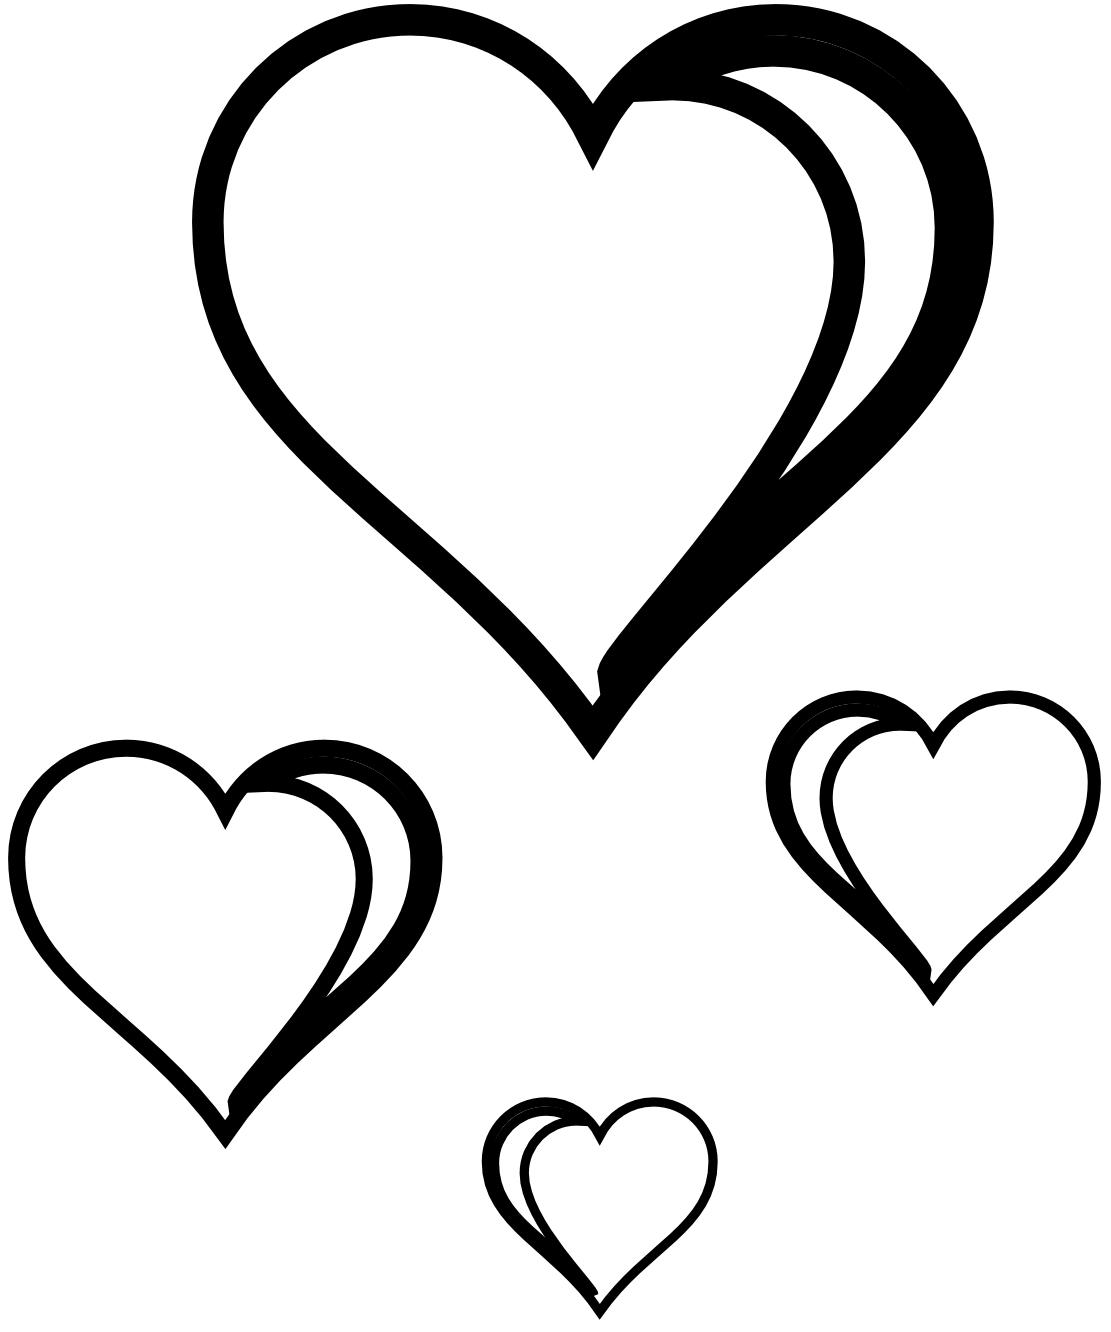 Black and white heart clipart banner freeuse stock Black And White Heart Clipart - Clipart Kid banner freeuse stock